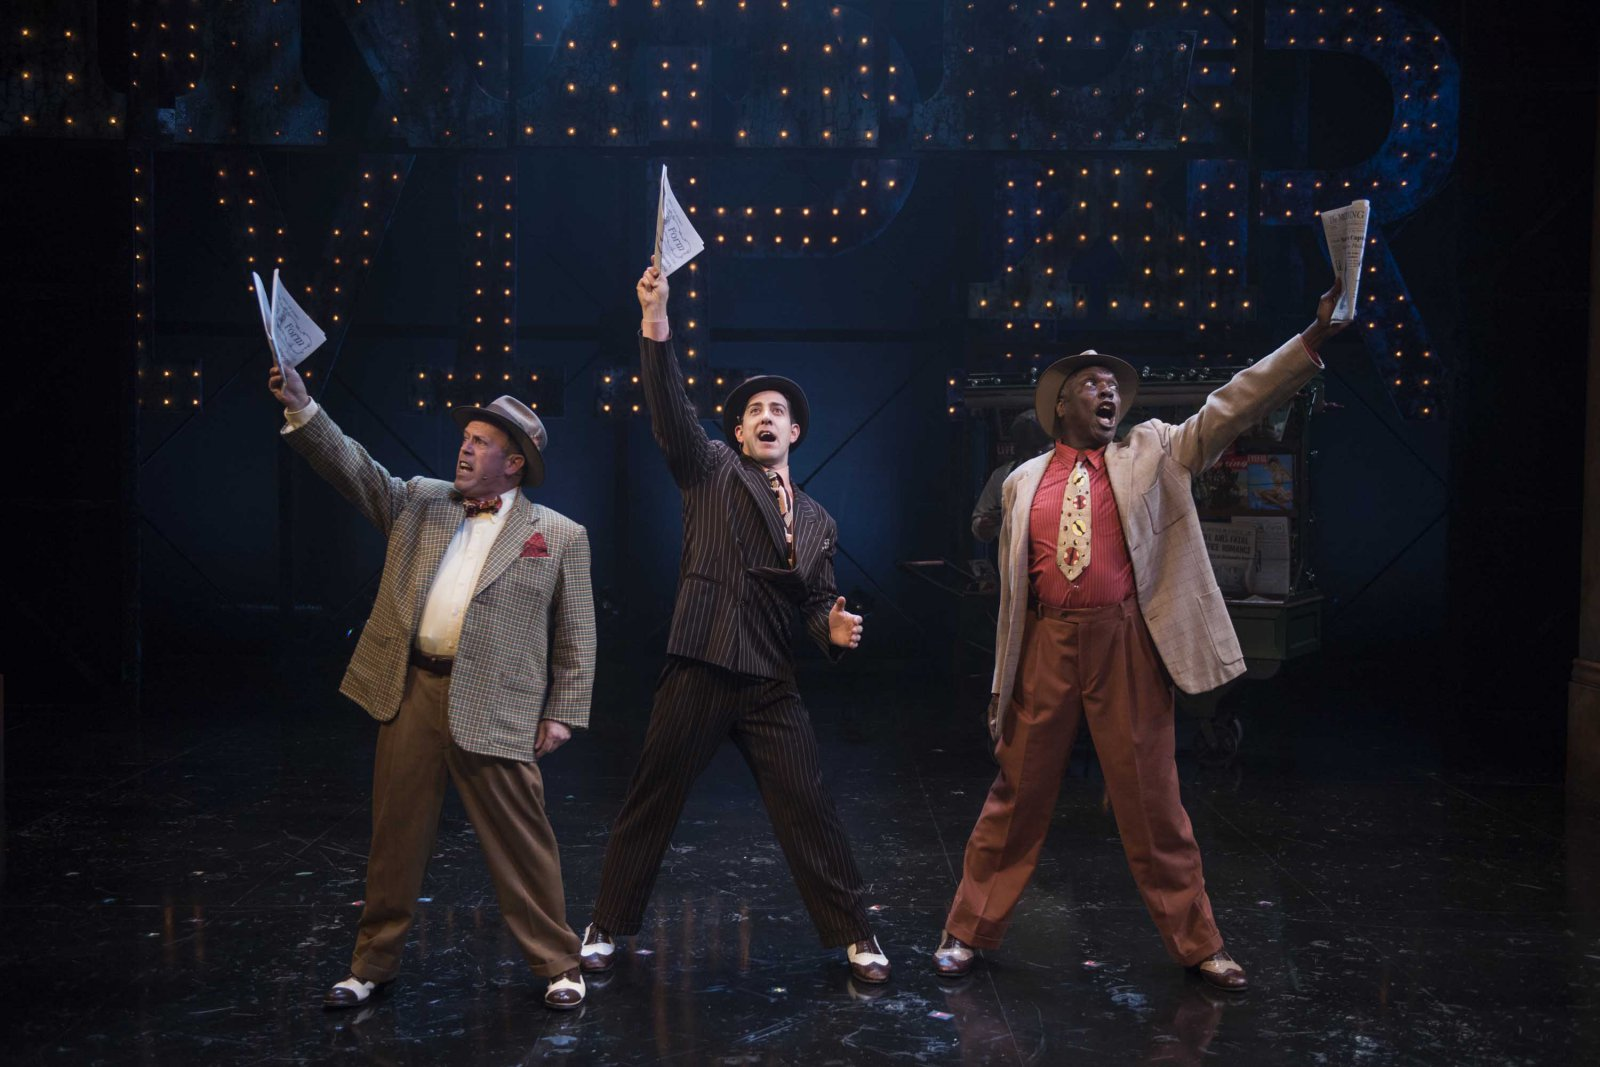 Milwaukee Repertory Theater presents Guys and Dolls in the Quadracci Powerhouse from September 19 to October 29, 2017. Left to Right: Michael J. Farina, Adrian Aguilar, Gerry McIntyre